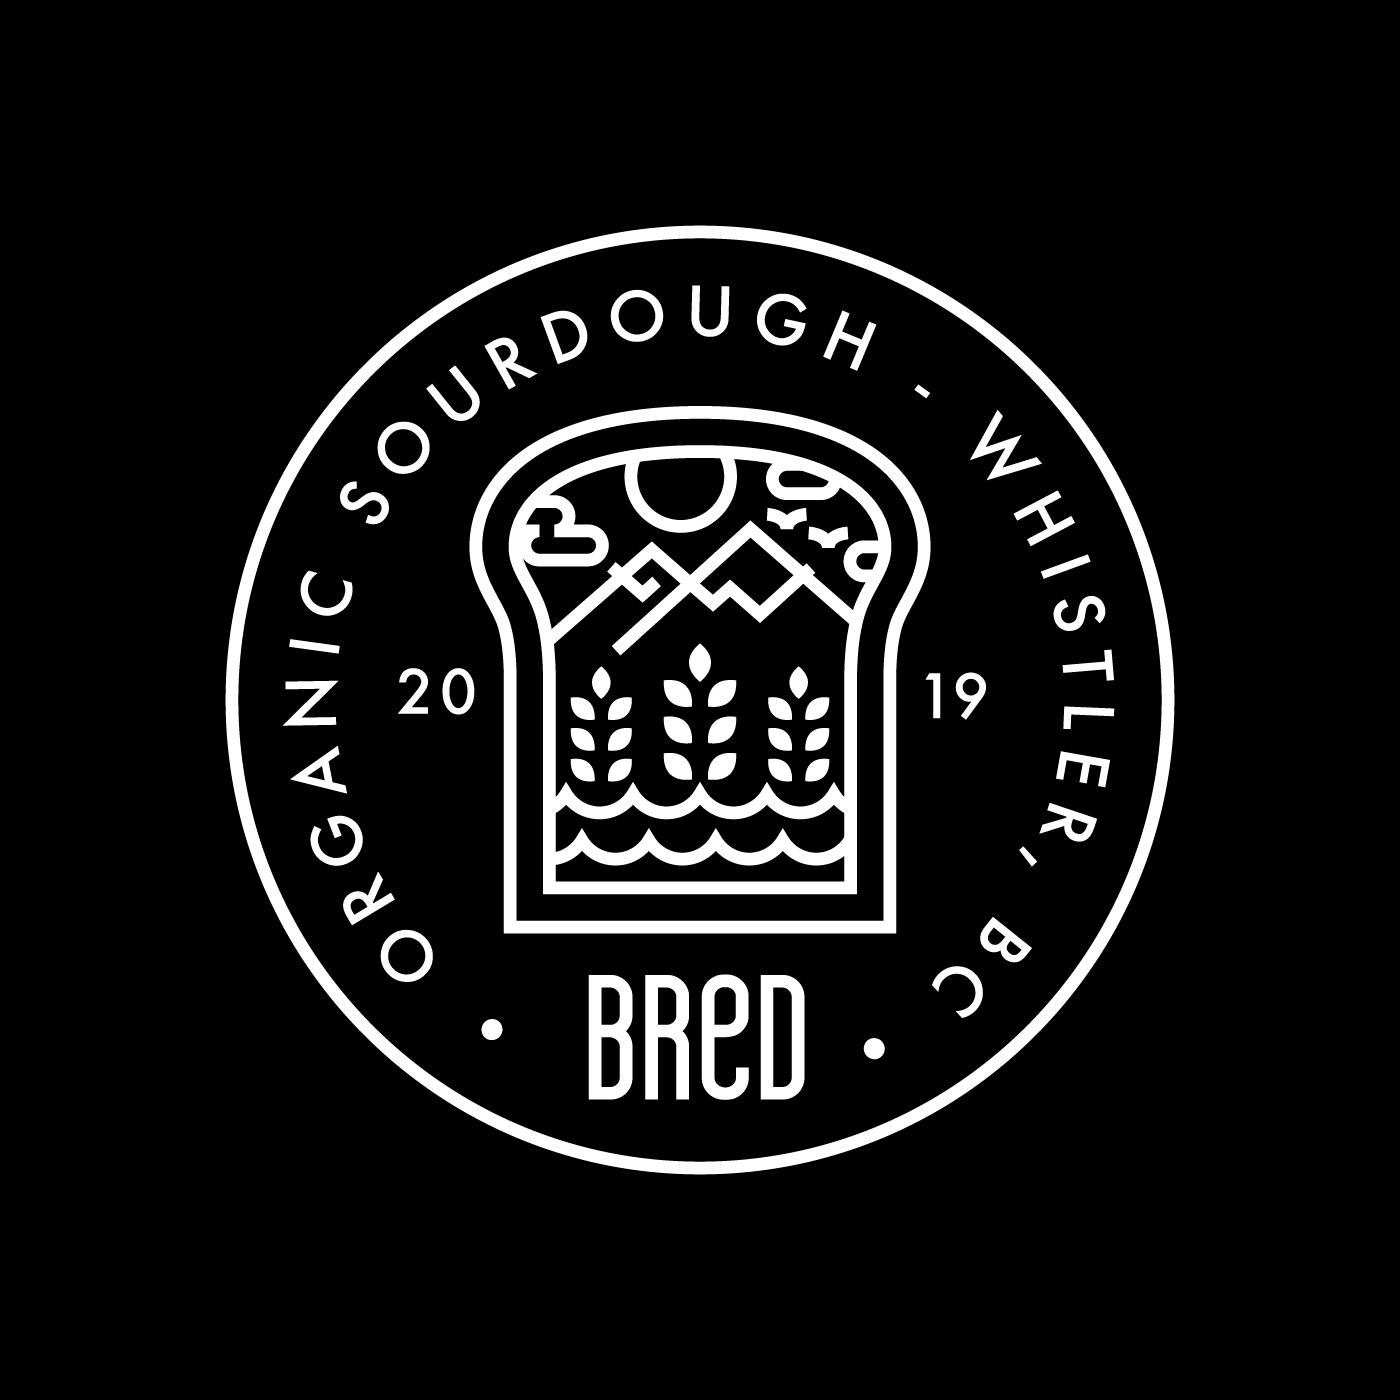 Black and white circle icon with the words: Organic Sourdough - Whistler, BC at its centre. The brand name Bred is also present, with the year 2019. The image at the centre is of a slice of bread with wheat grains, ocean waves, mountains and clouds at the centre.